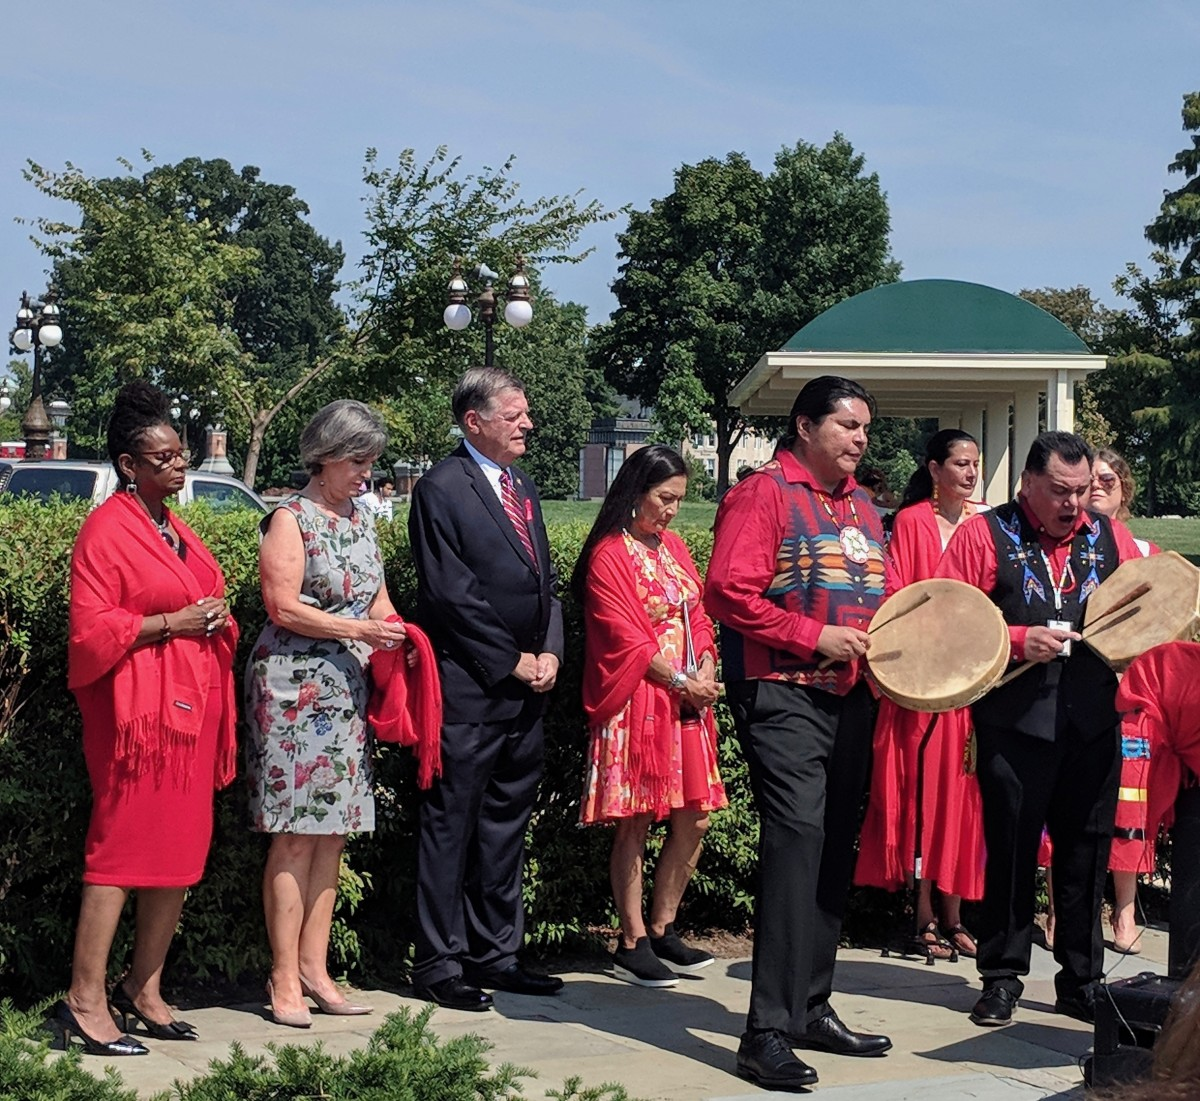 Left to right: Rep. Gwen Moore, Rep. Betty McCollum, Rep. Tom Cole and Rep. Deb Haaland (Photo by Kolby KickingWoman)